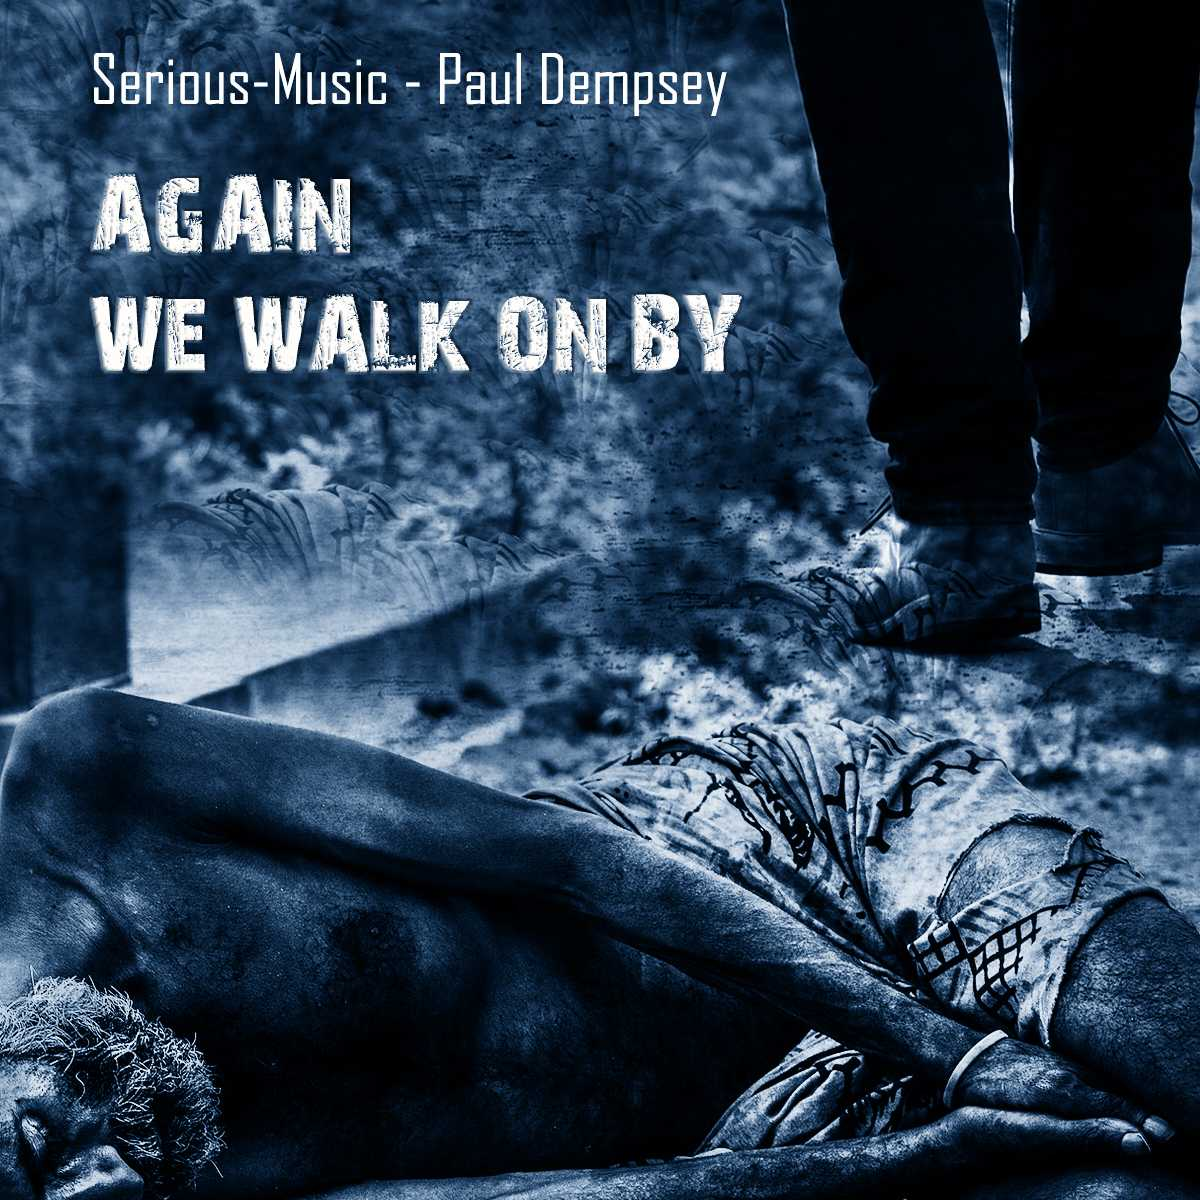 Again We Walk On By feat. Paul Dempsey - Album ECHOES OF YESTERDAY